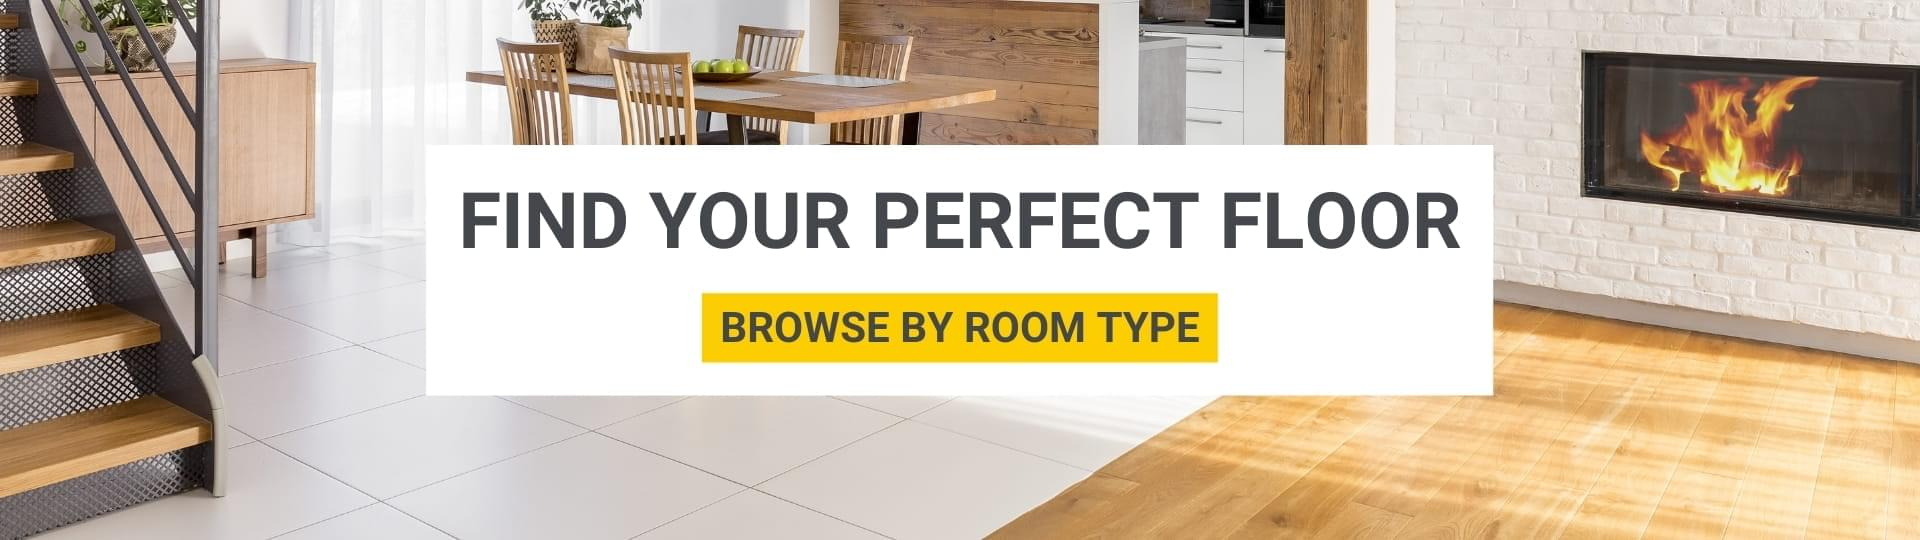 Find your perfect floor - Browse by room type